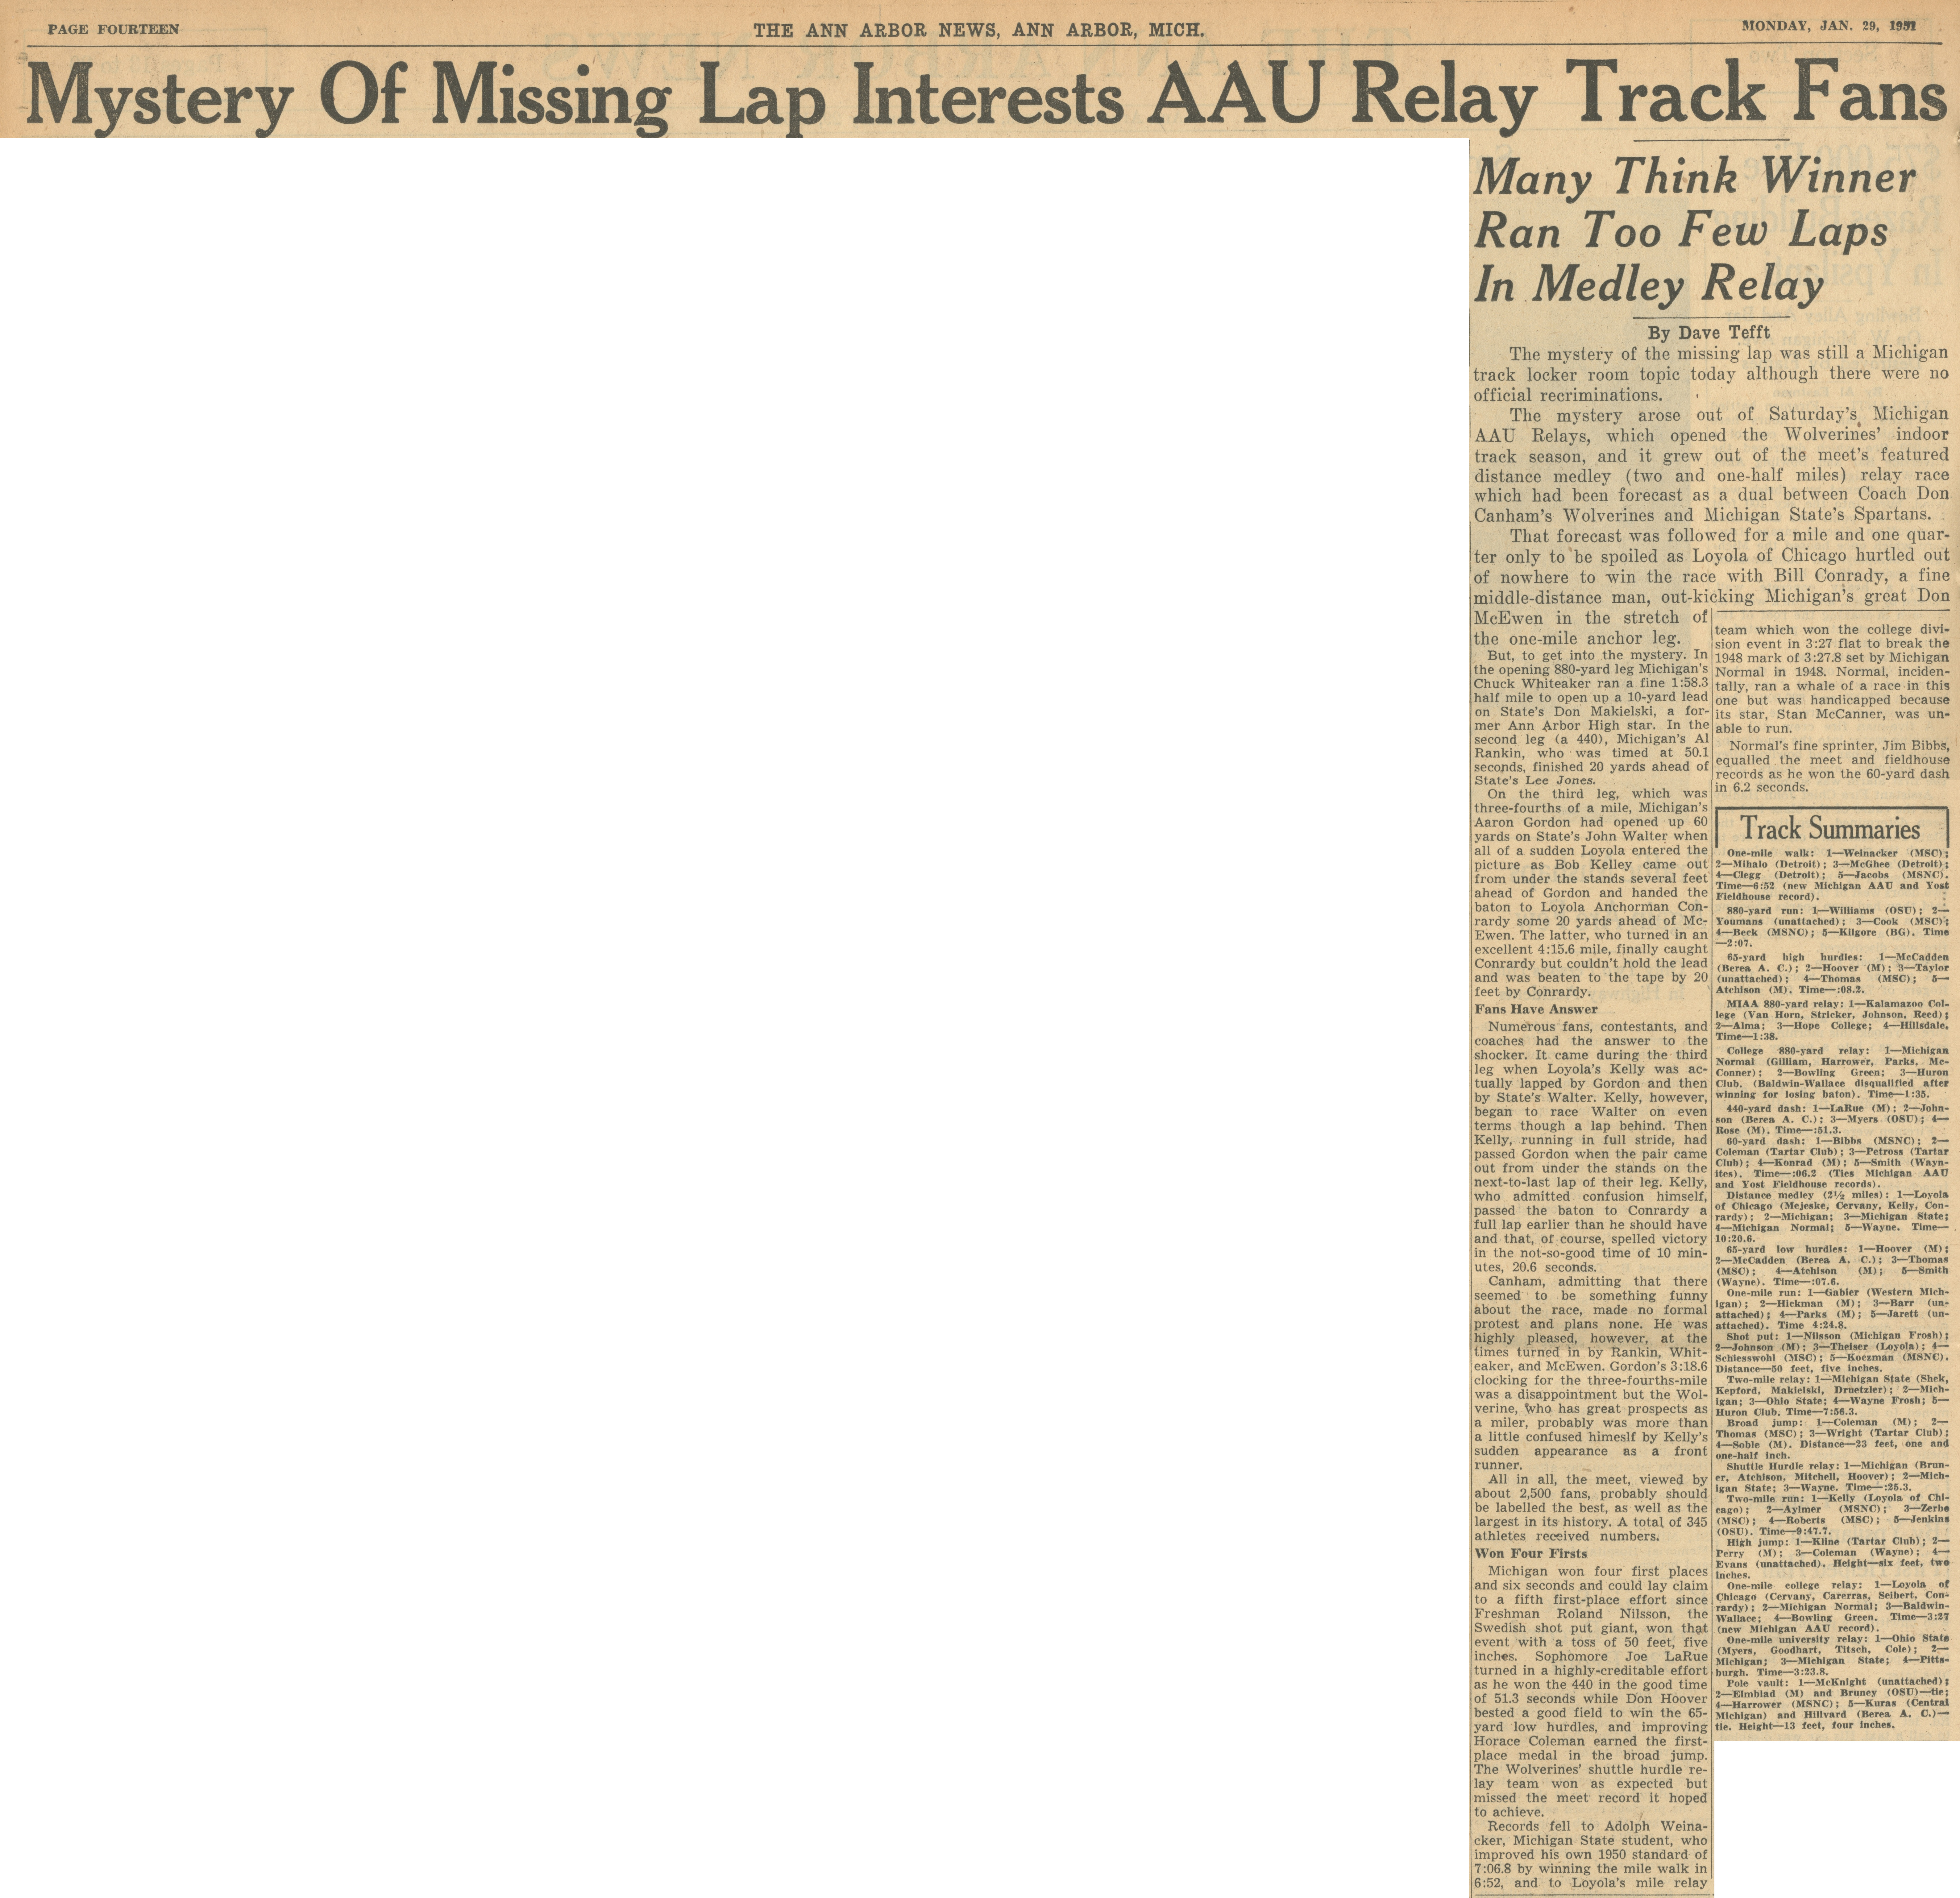 Mystery Of Missing Lap Interests AAU Relay Track Fans image